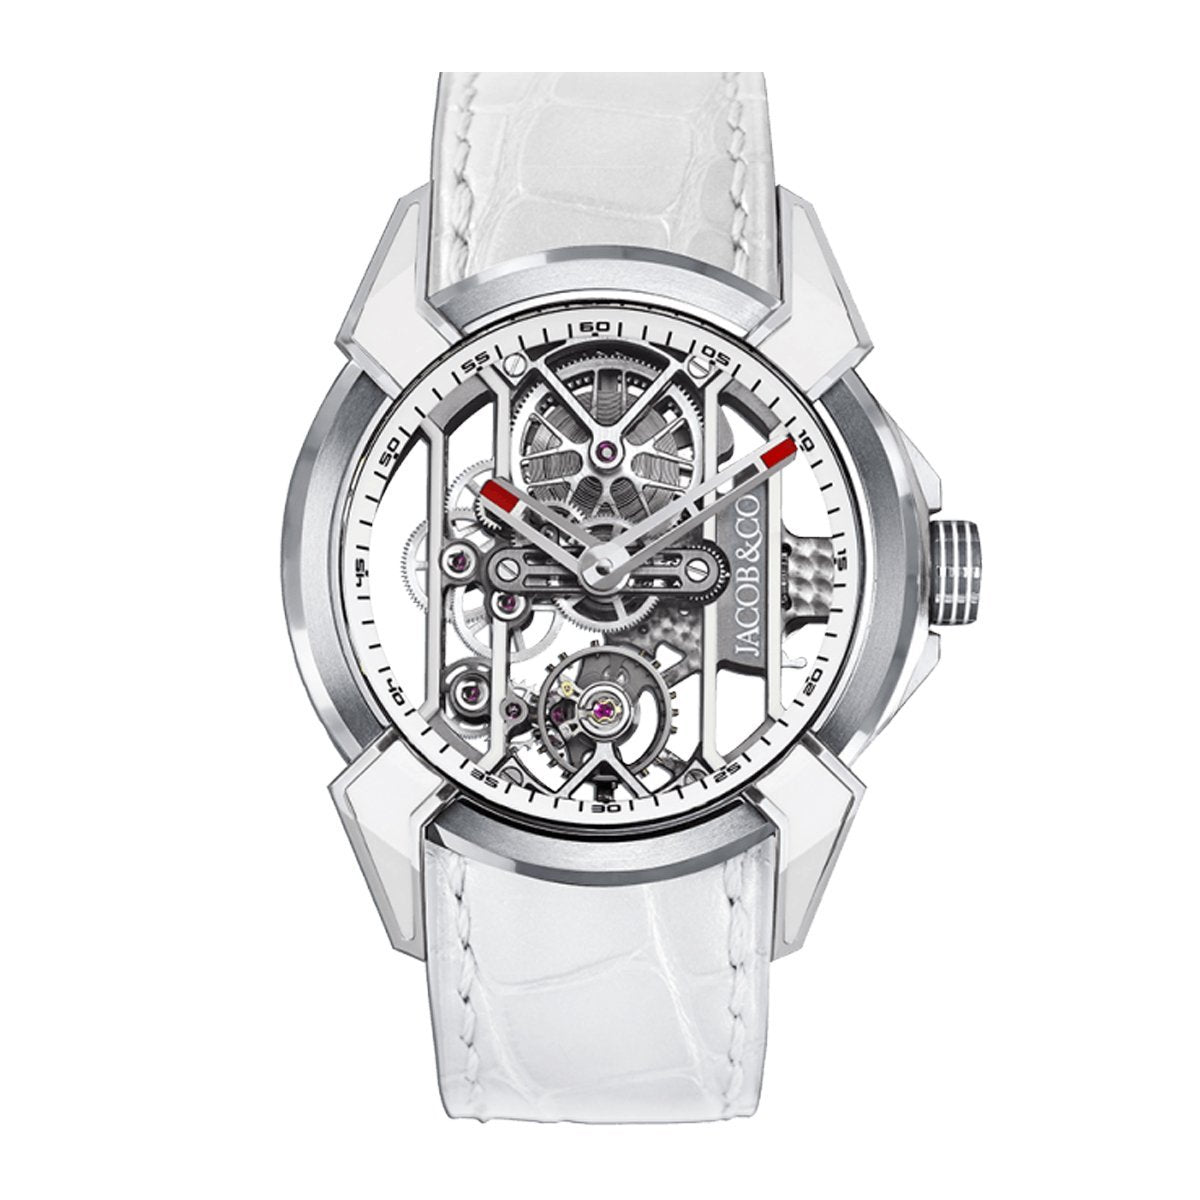 Jacob & Co. Epic X Racing Titanium White - Watches & Crystals